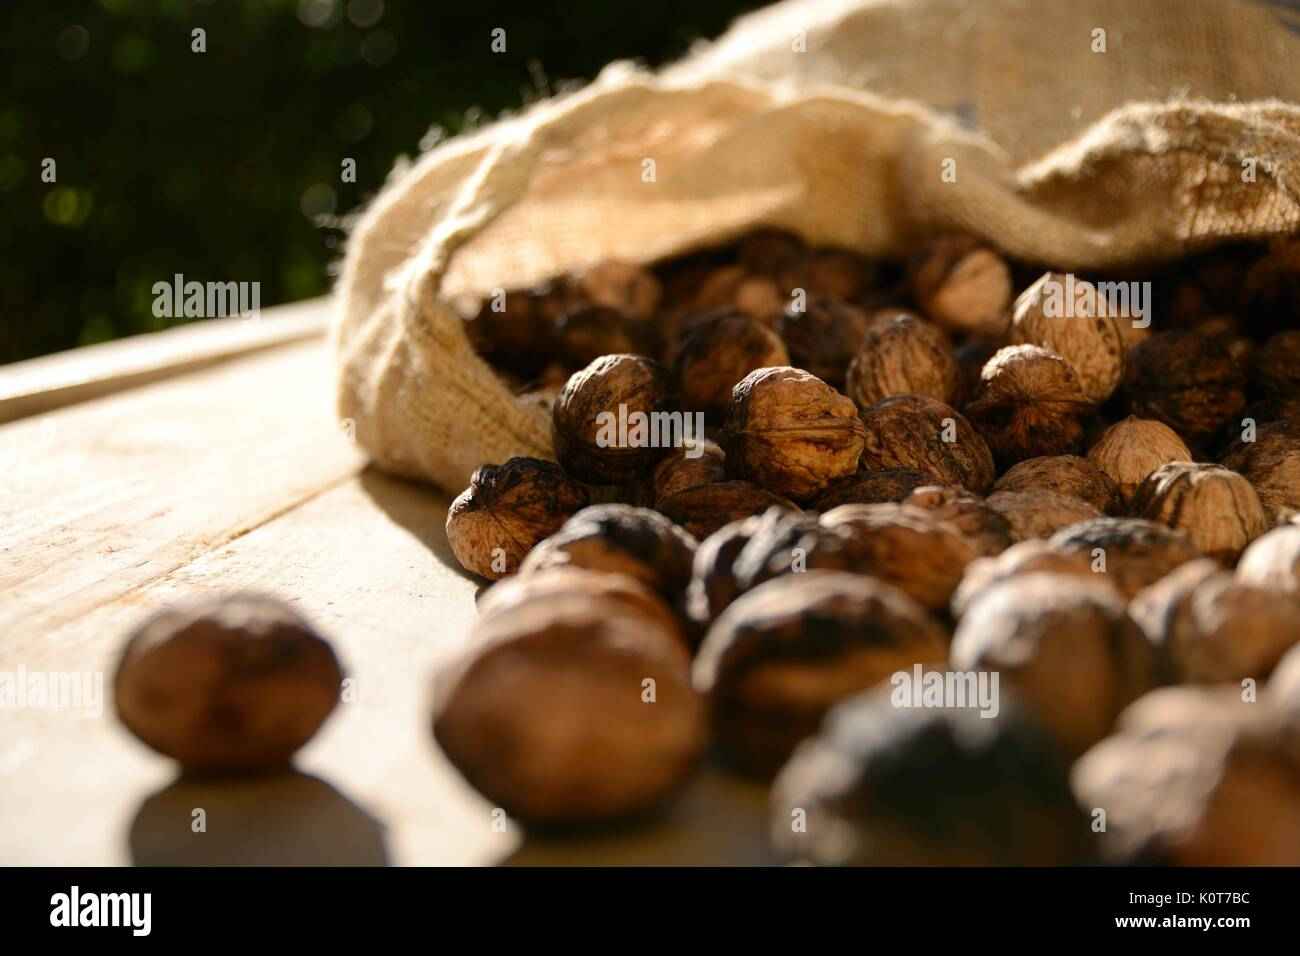 Walnuts out of a canvas bag on a rustic wooden table. Landscape format. - Stock Image